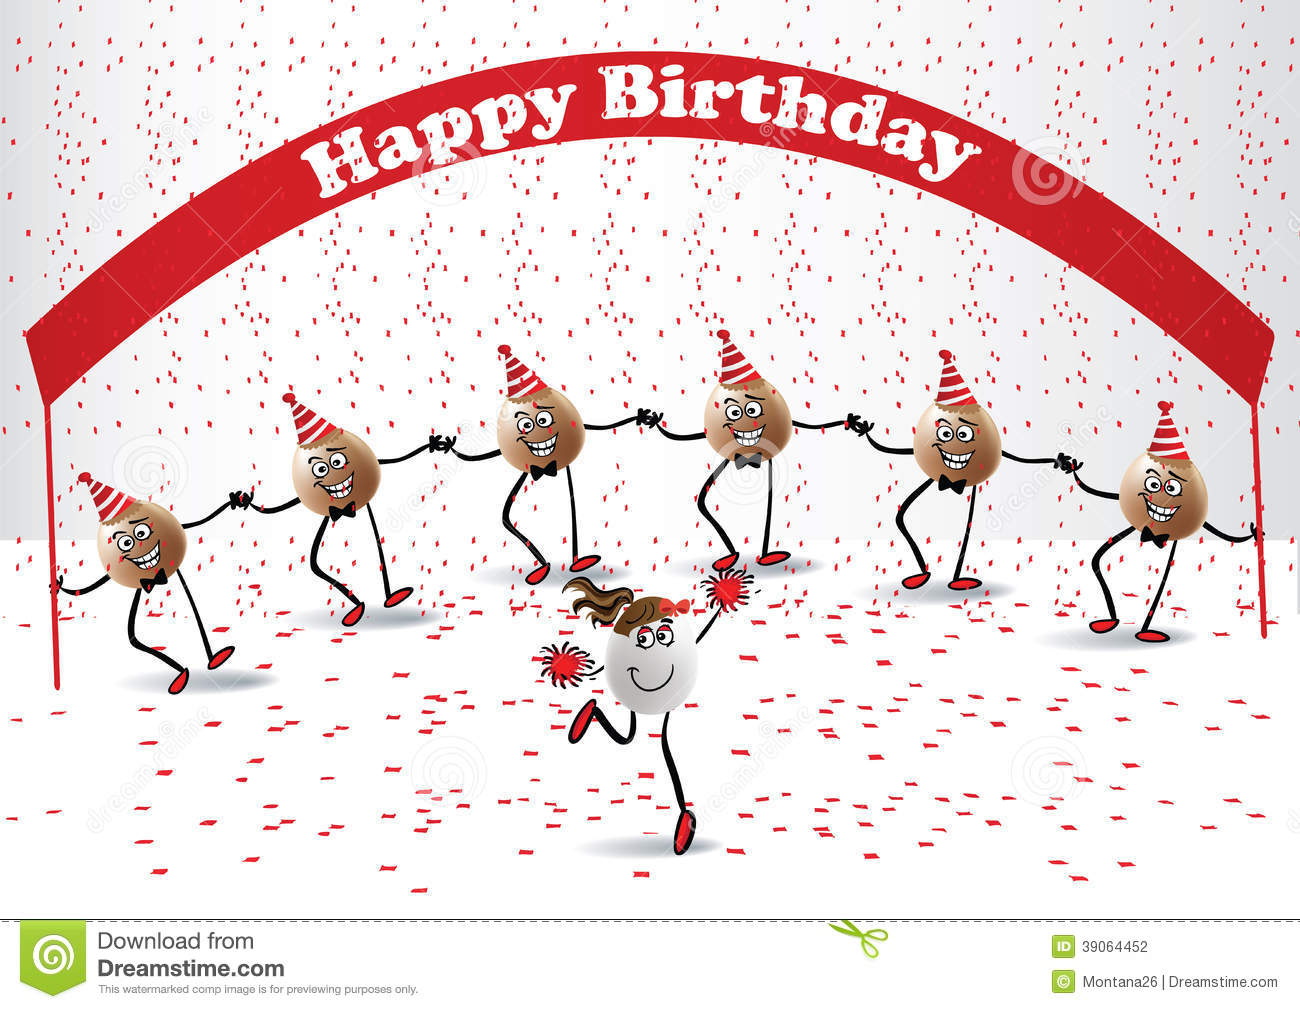 Astonishing Happy Birthday Dance Stock Vector Illustration Of Ornate 39064452 Personalised Birthday Cards Veneteletsinfo